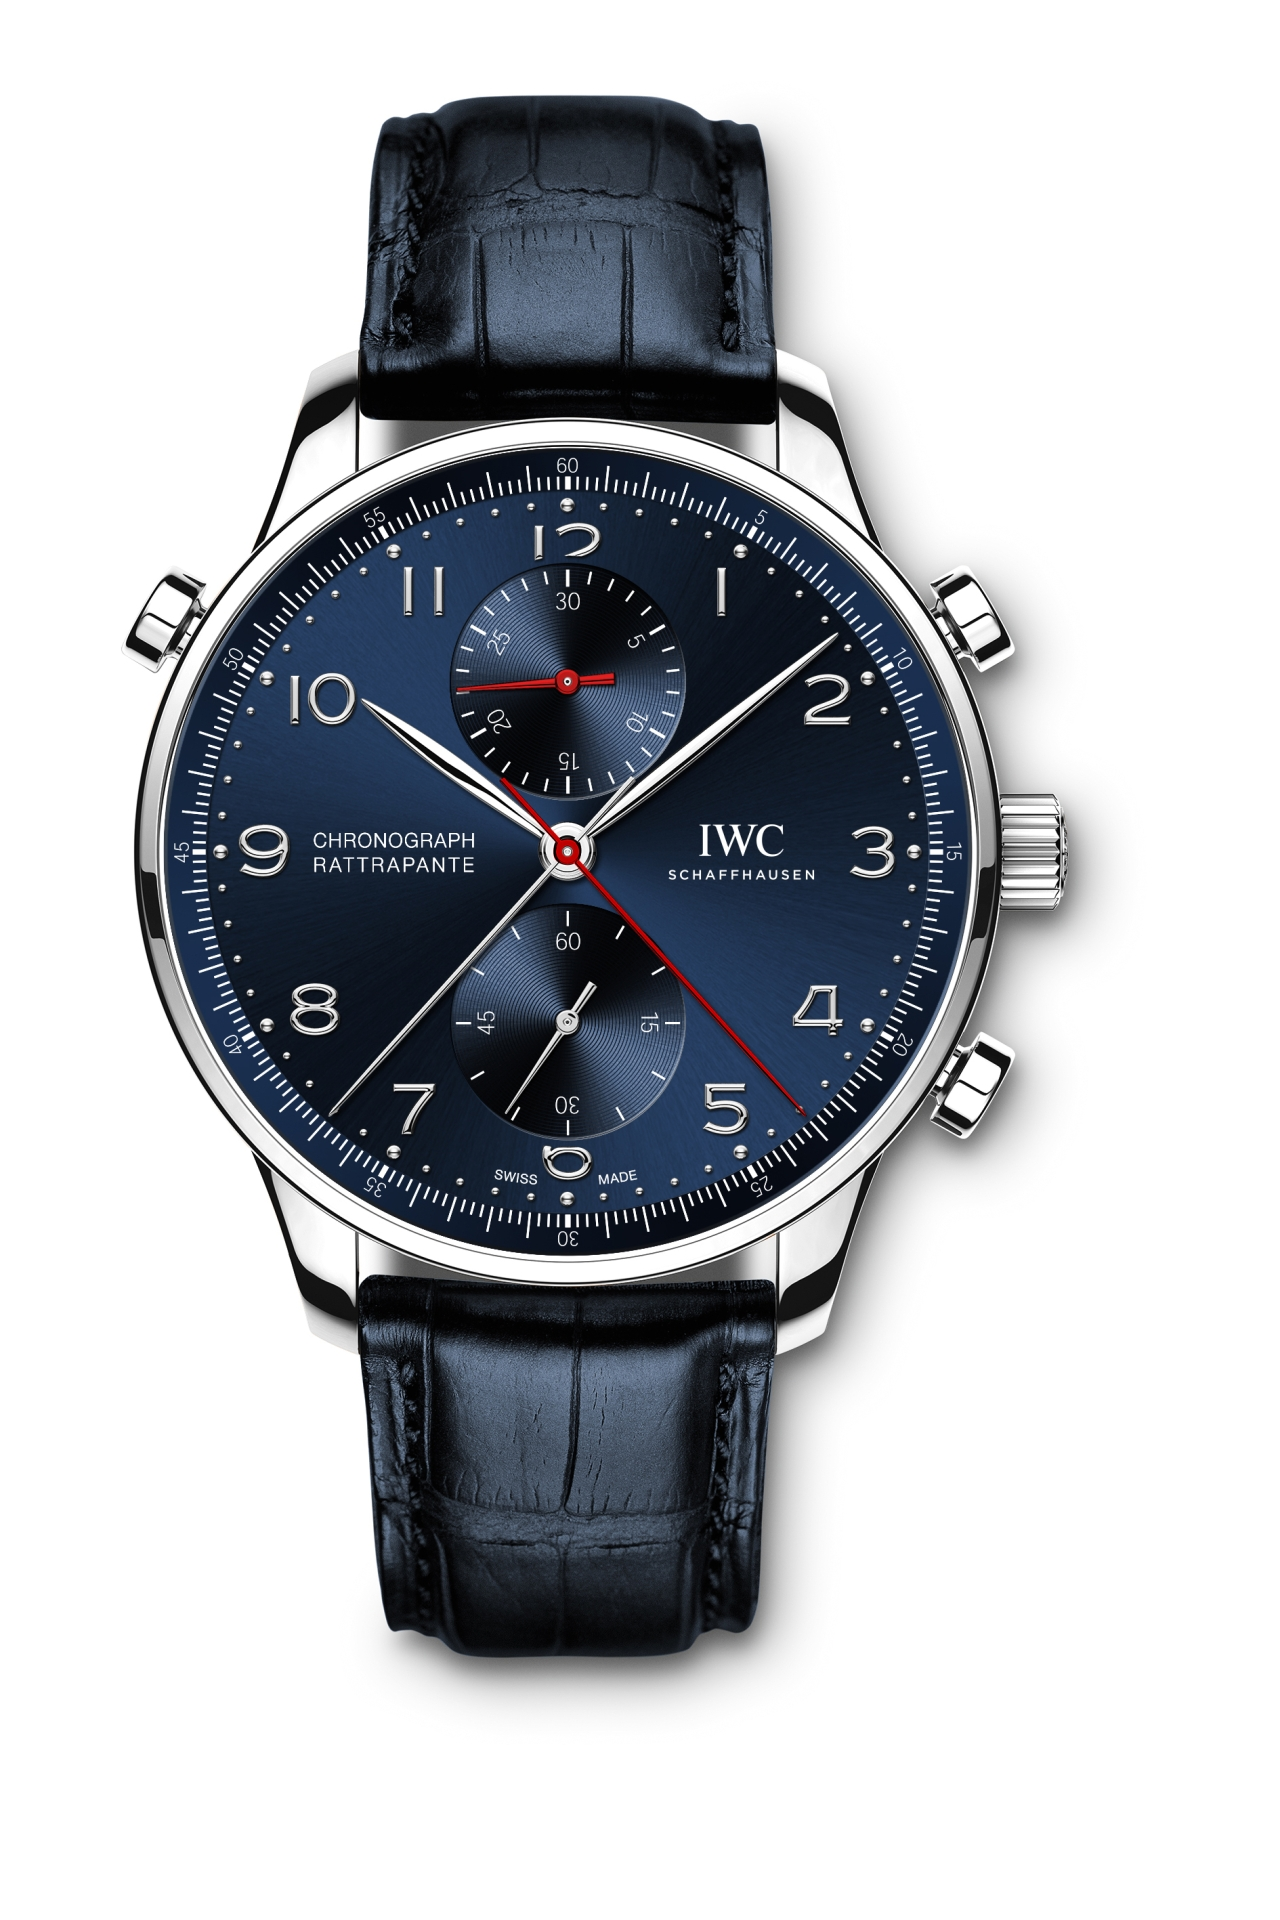 """The Portugieser Chronograph Rattrapante Edition """"Boutique Munich"""" (Ref. IW371217) is a 250-piece limited edition. The timepiece is driven by a hand-wound 76240-calibre movement with a power reserve of 44 hours. (PPR/IWC)"""